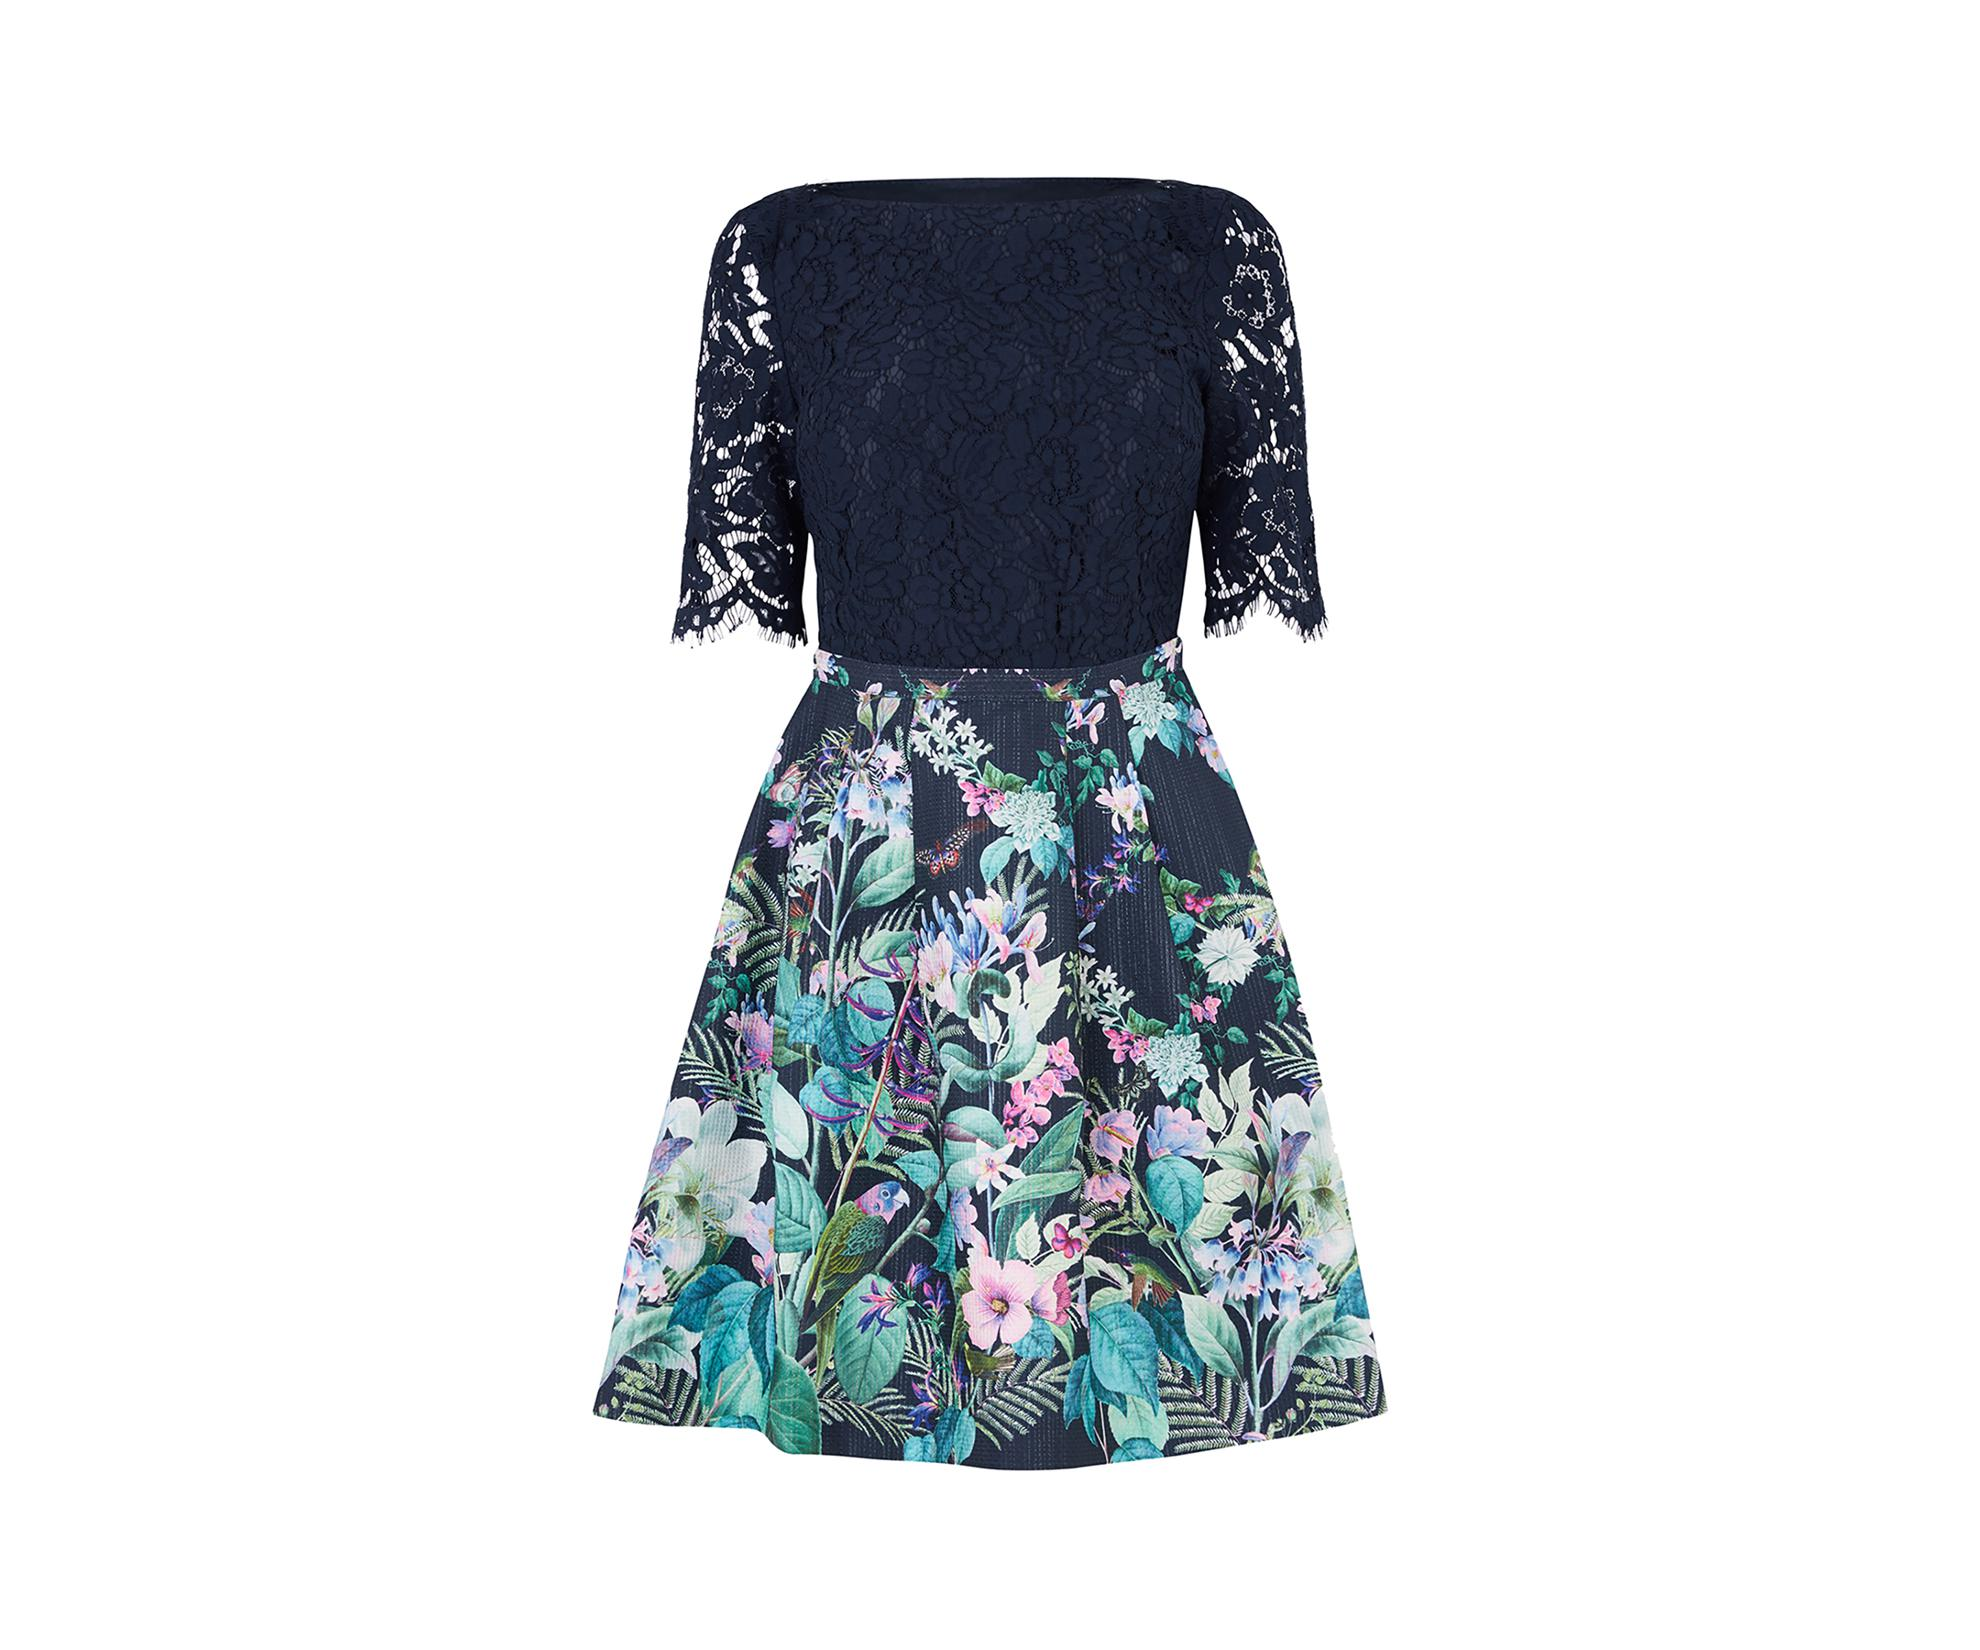 90a3e5354c6 Lace Top Floral Skirt Dress - Gomes Weine AG